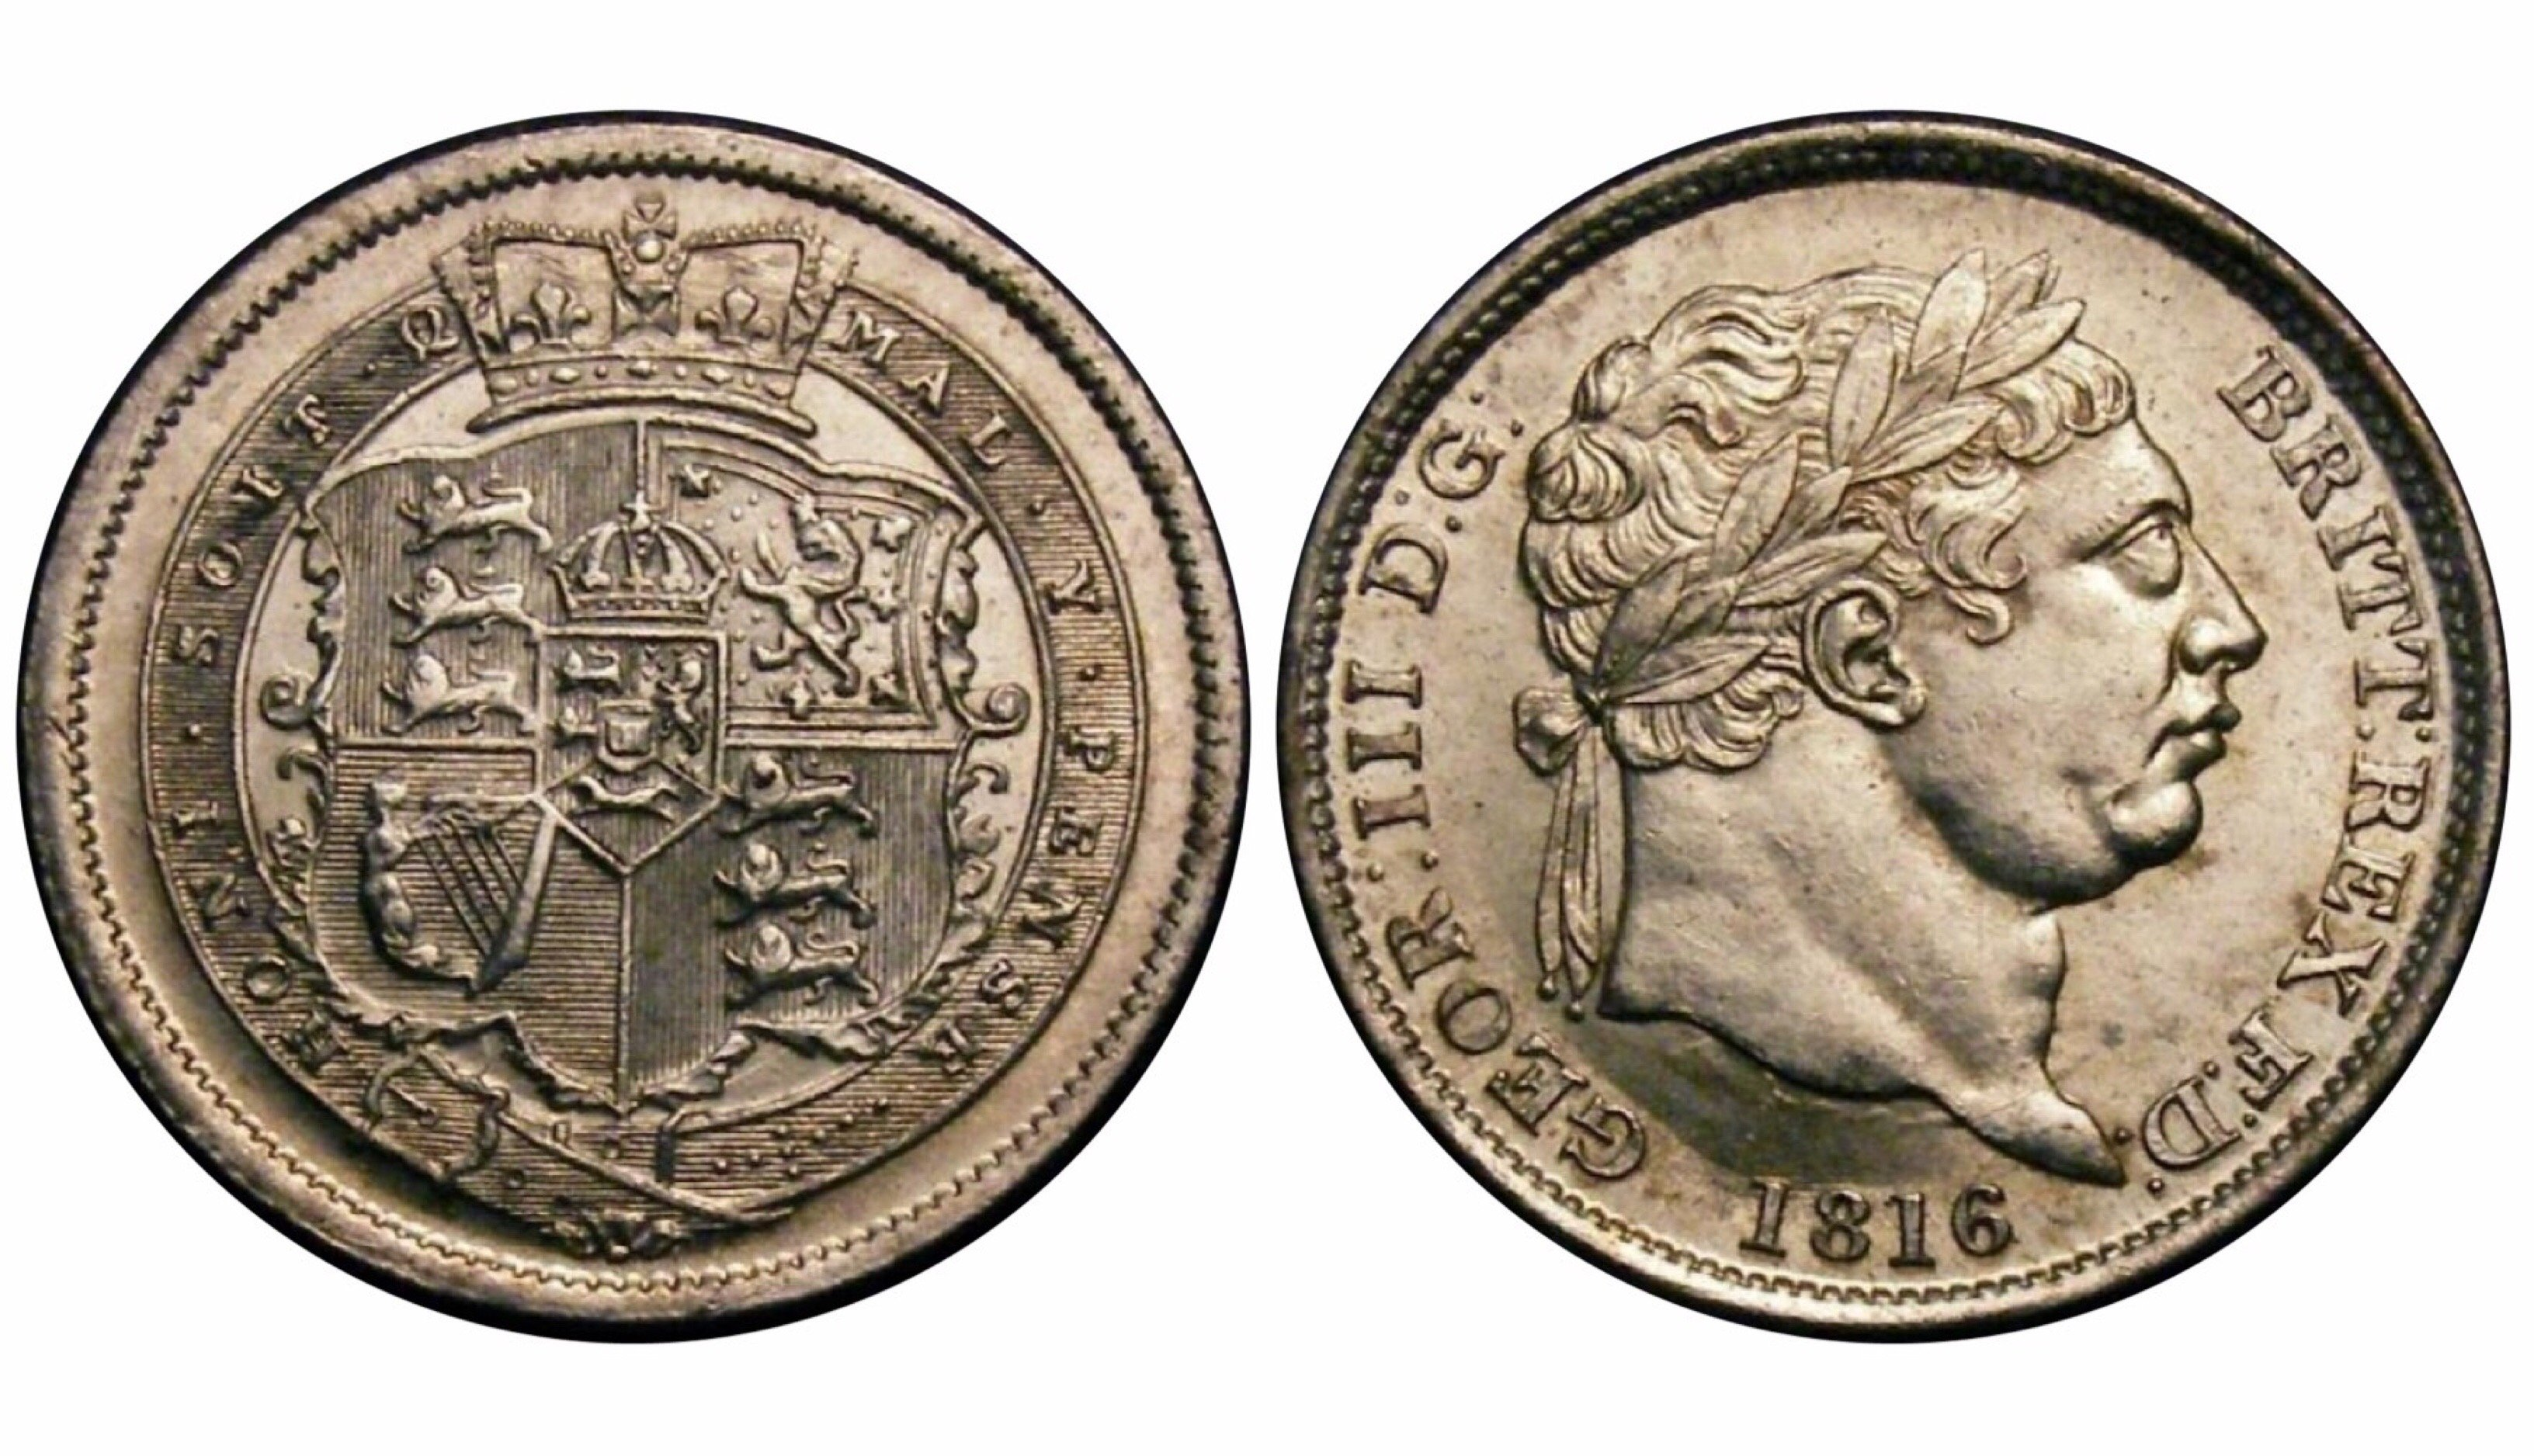 1816 Shilling, CGS 82(MS 64-65), Choice UNC, George III, ESC 1228, UIN 32331